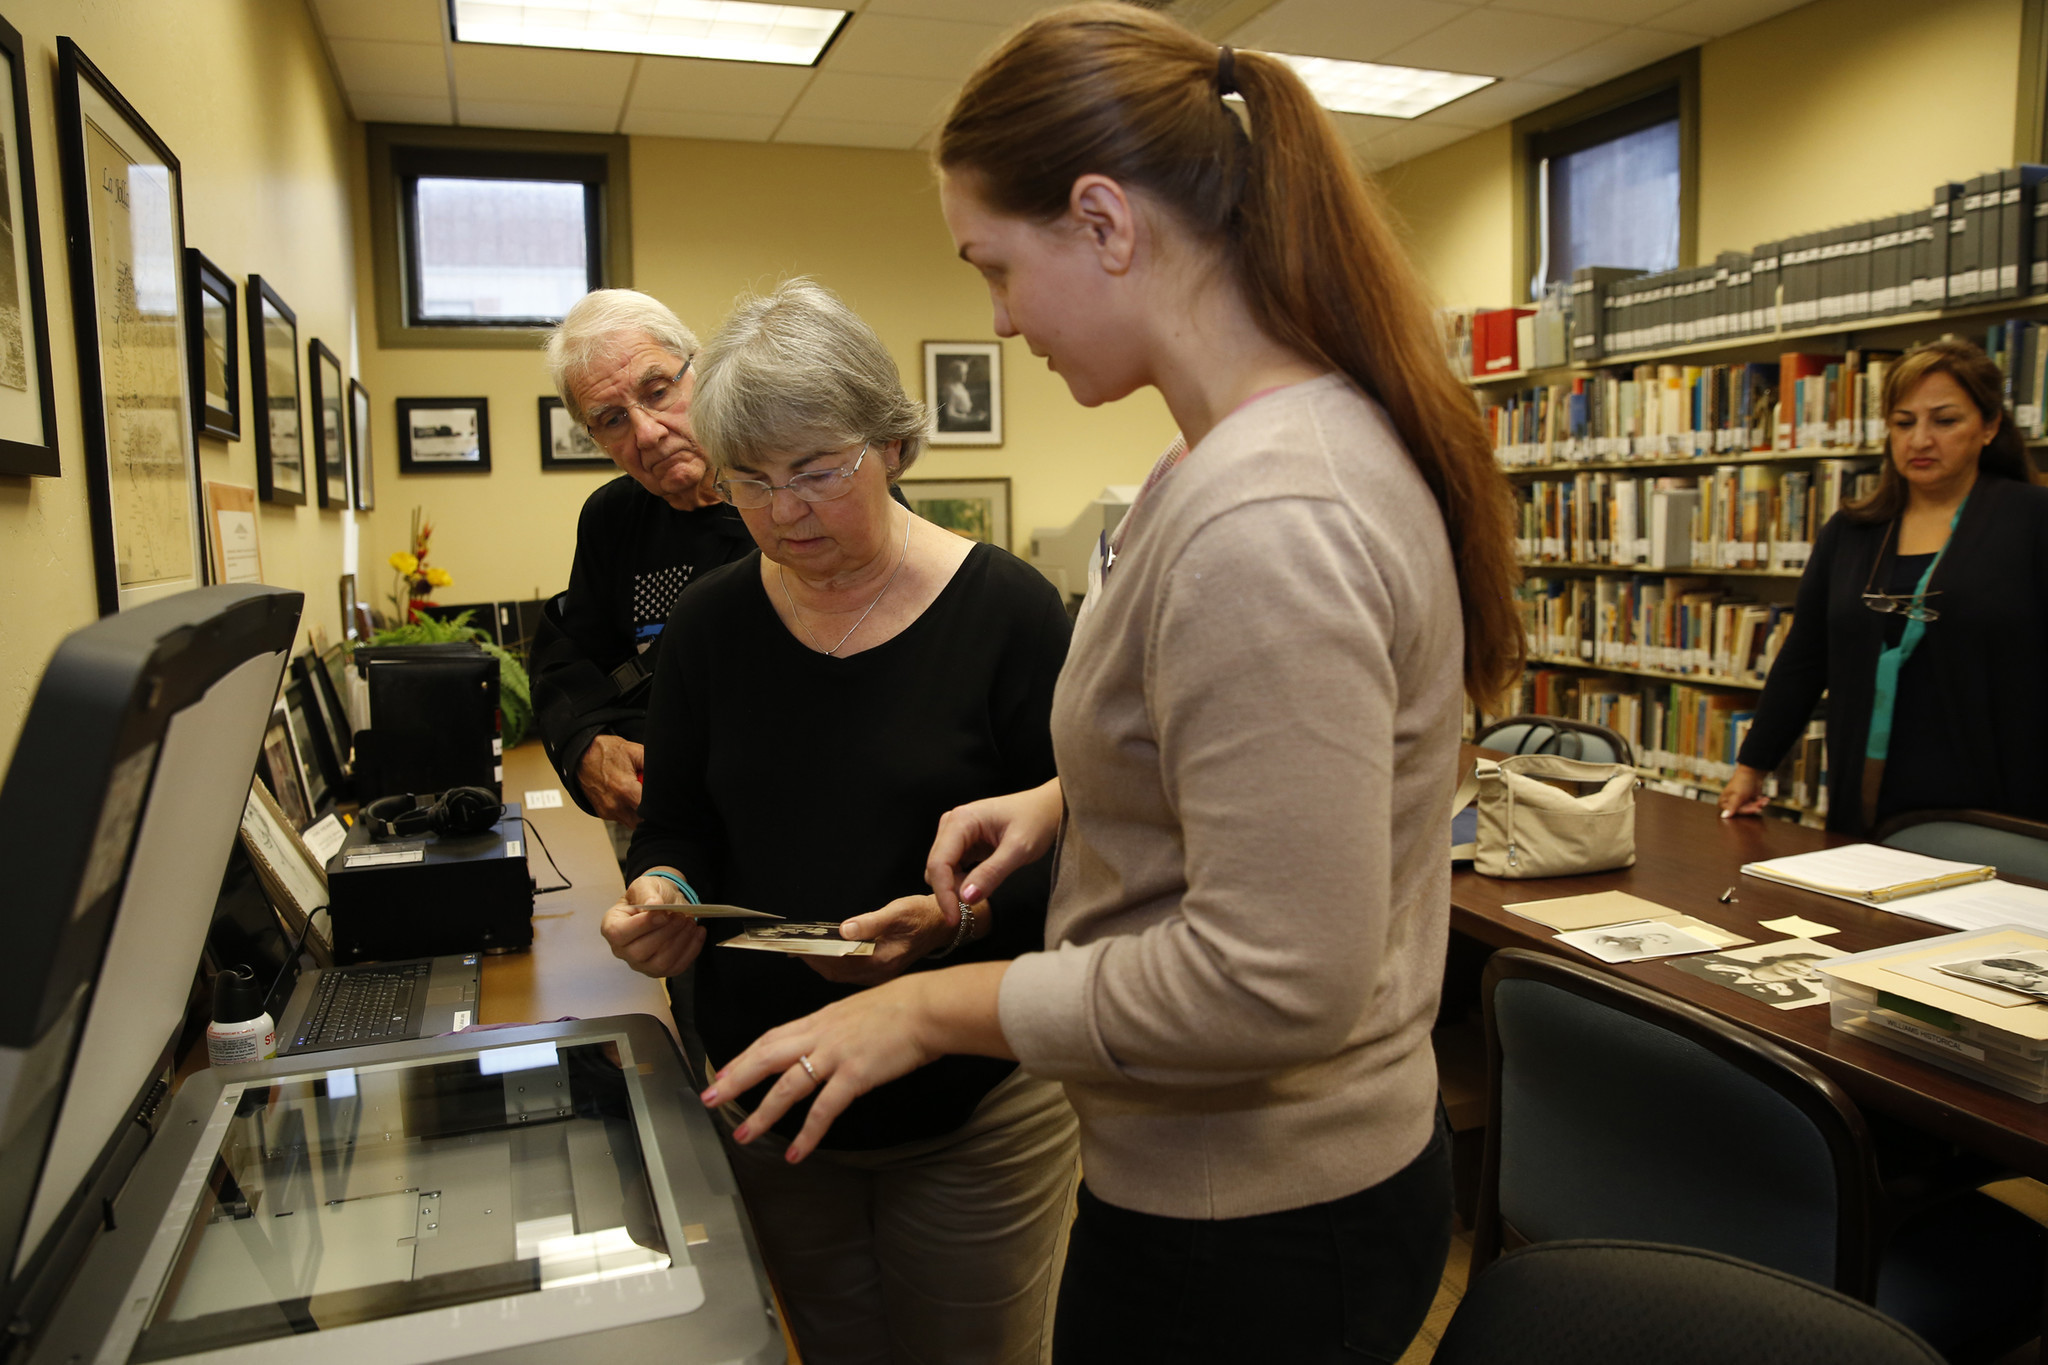 Library assistant Dana Sneberger gives Debbie Hill-Williams (center) and her husband, Bob Williams, hands-on instruction at the new Memory Lab at the La Jolla-Riford Library. Patrons can use software to convert their VHS tapes, photos and other keepsakes to a digital format. (Nancee E. Lewis)